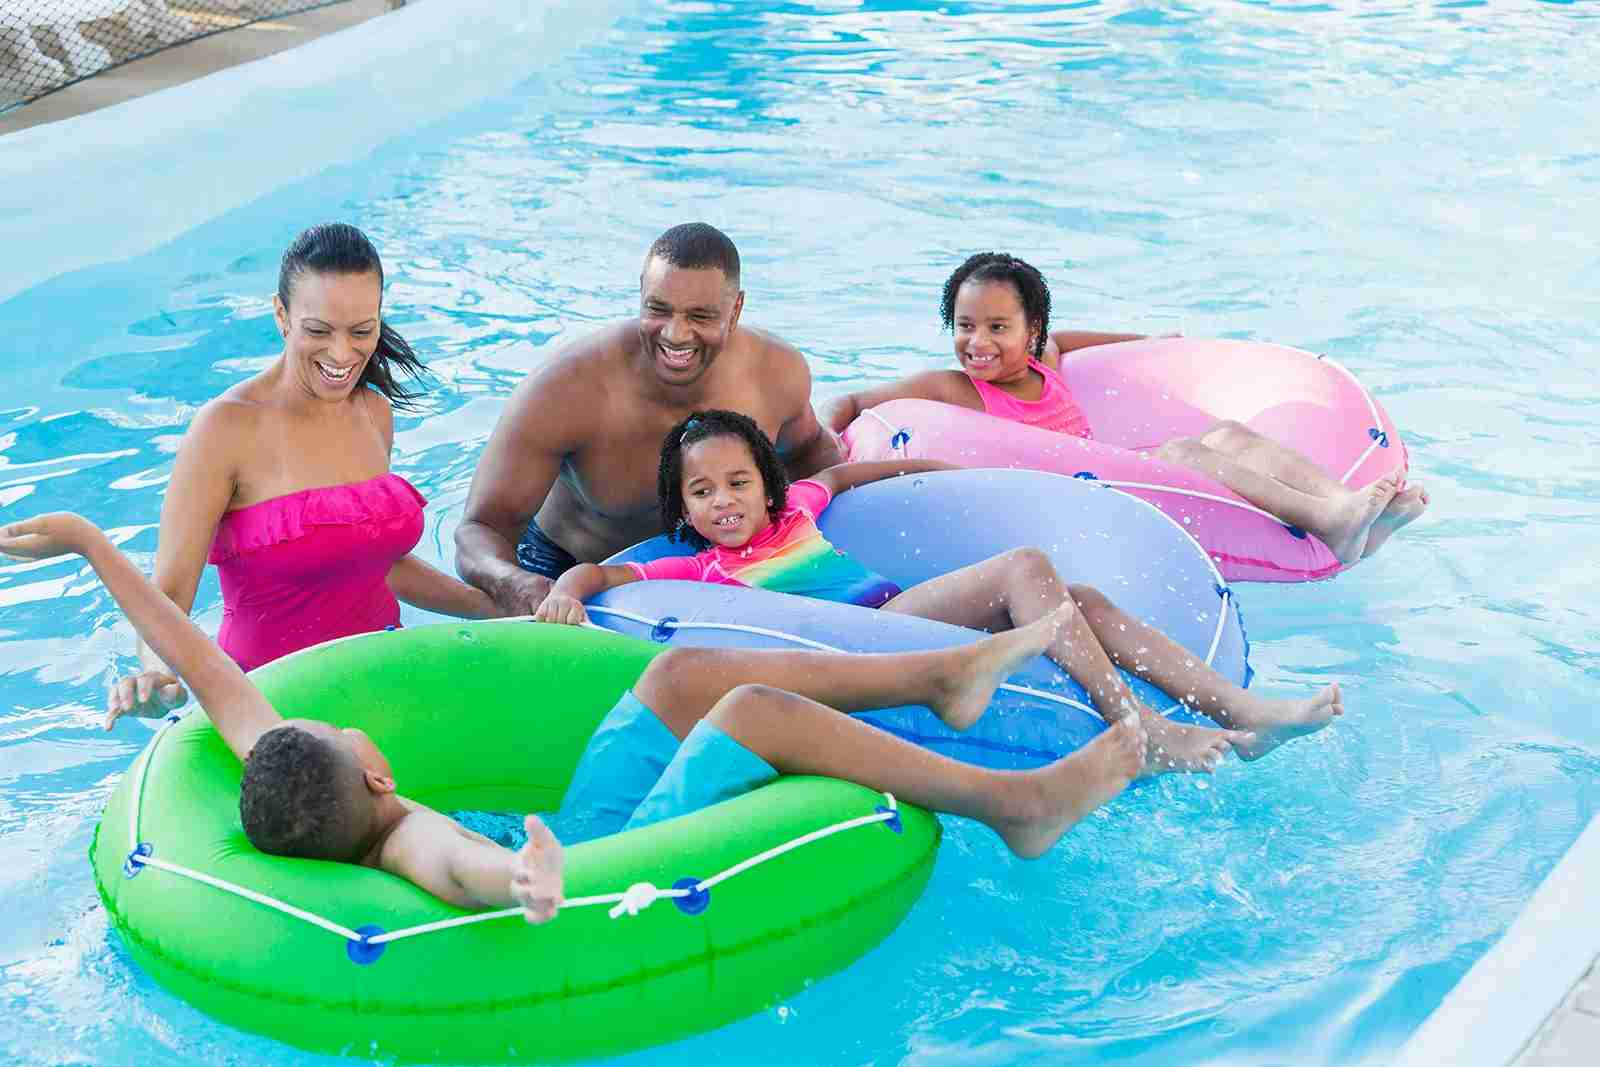 A large mixed race family with three children having fun at a water park on the lazy river. The parents are standing in the water and the two girls and a boy are lying on inflatable innertubes.